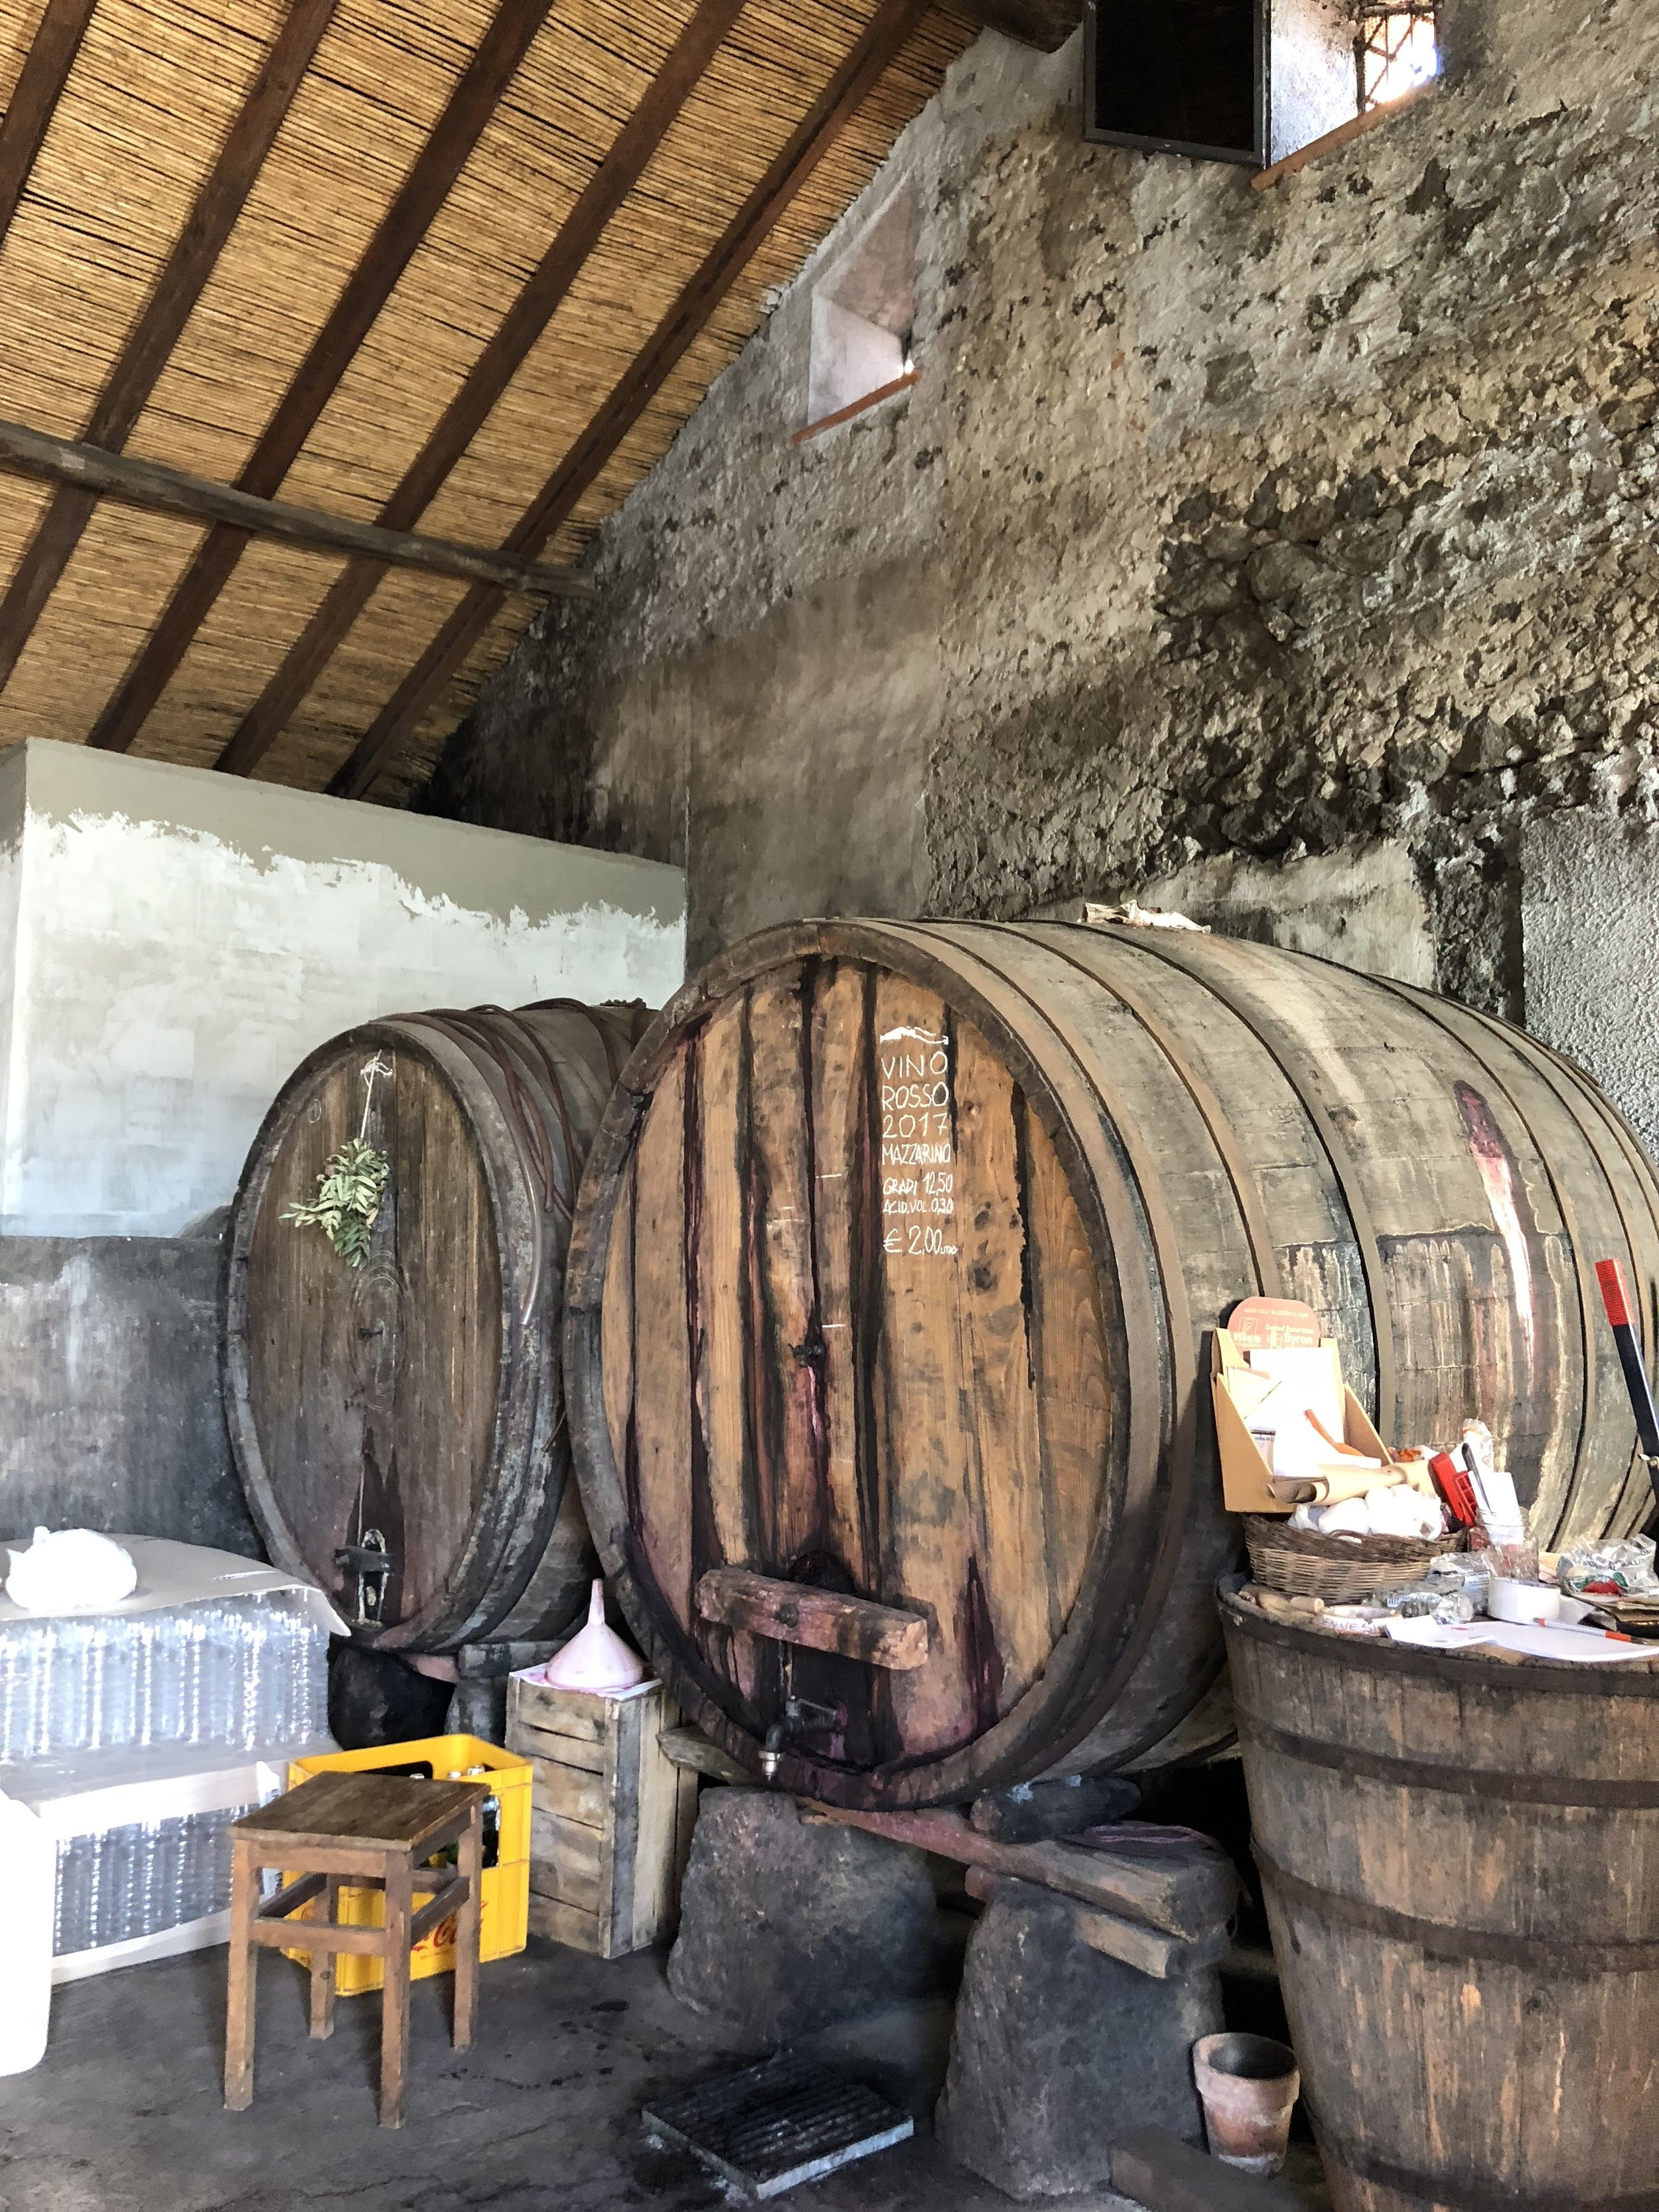 Inside: the wine barrels! There were 3: White, Red and Rosato.